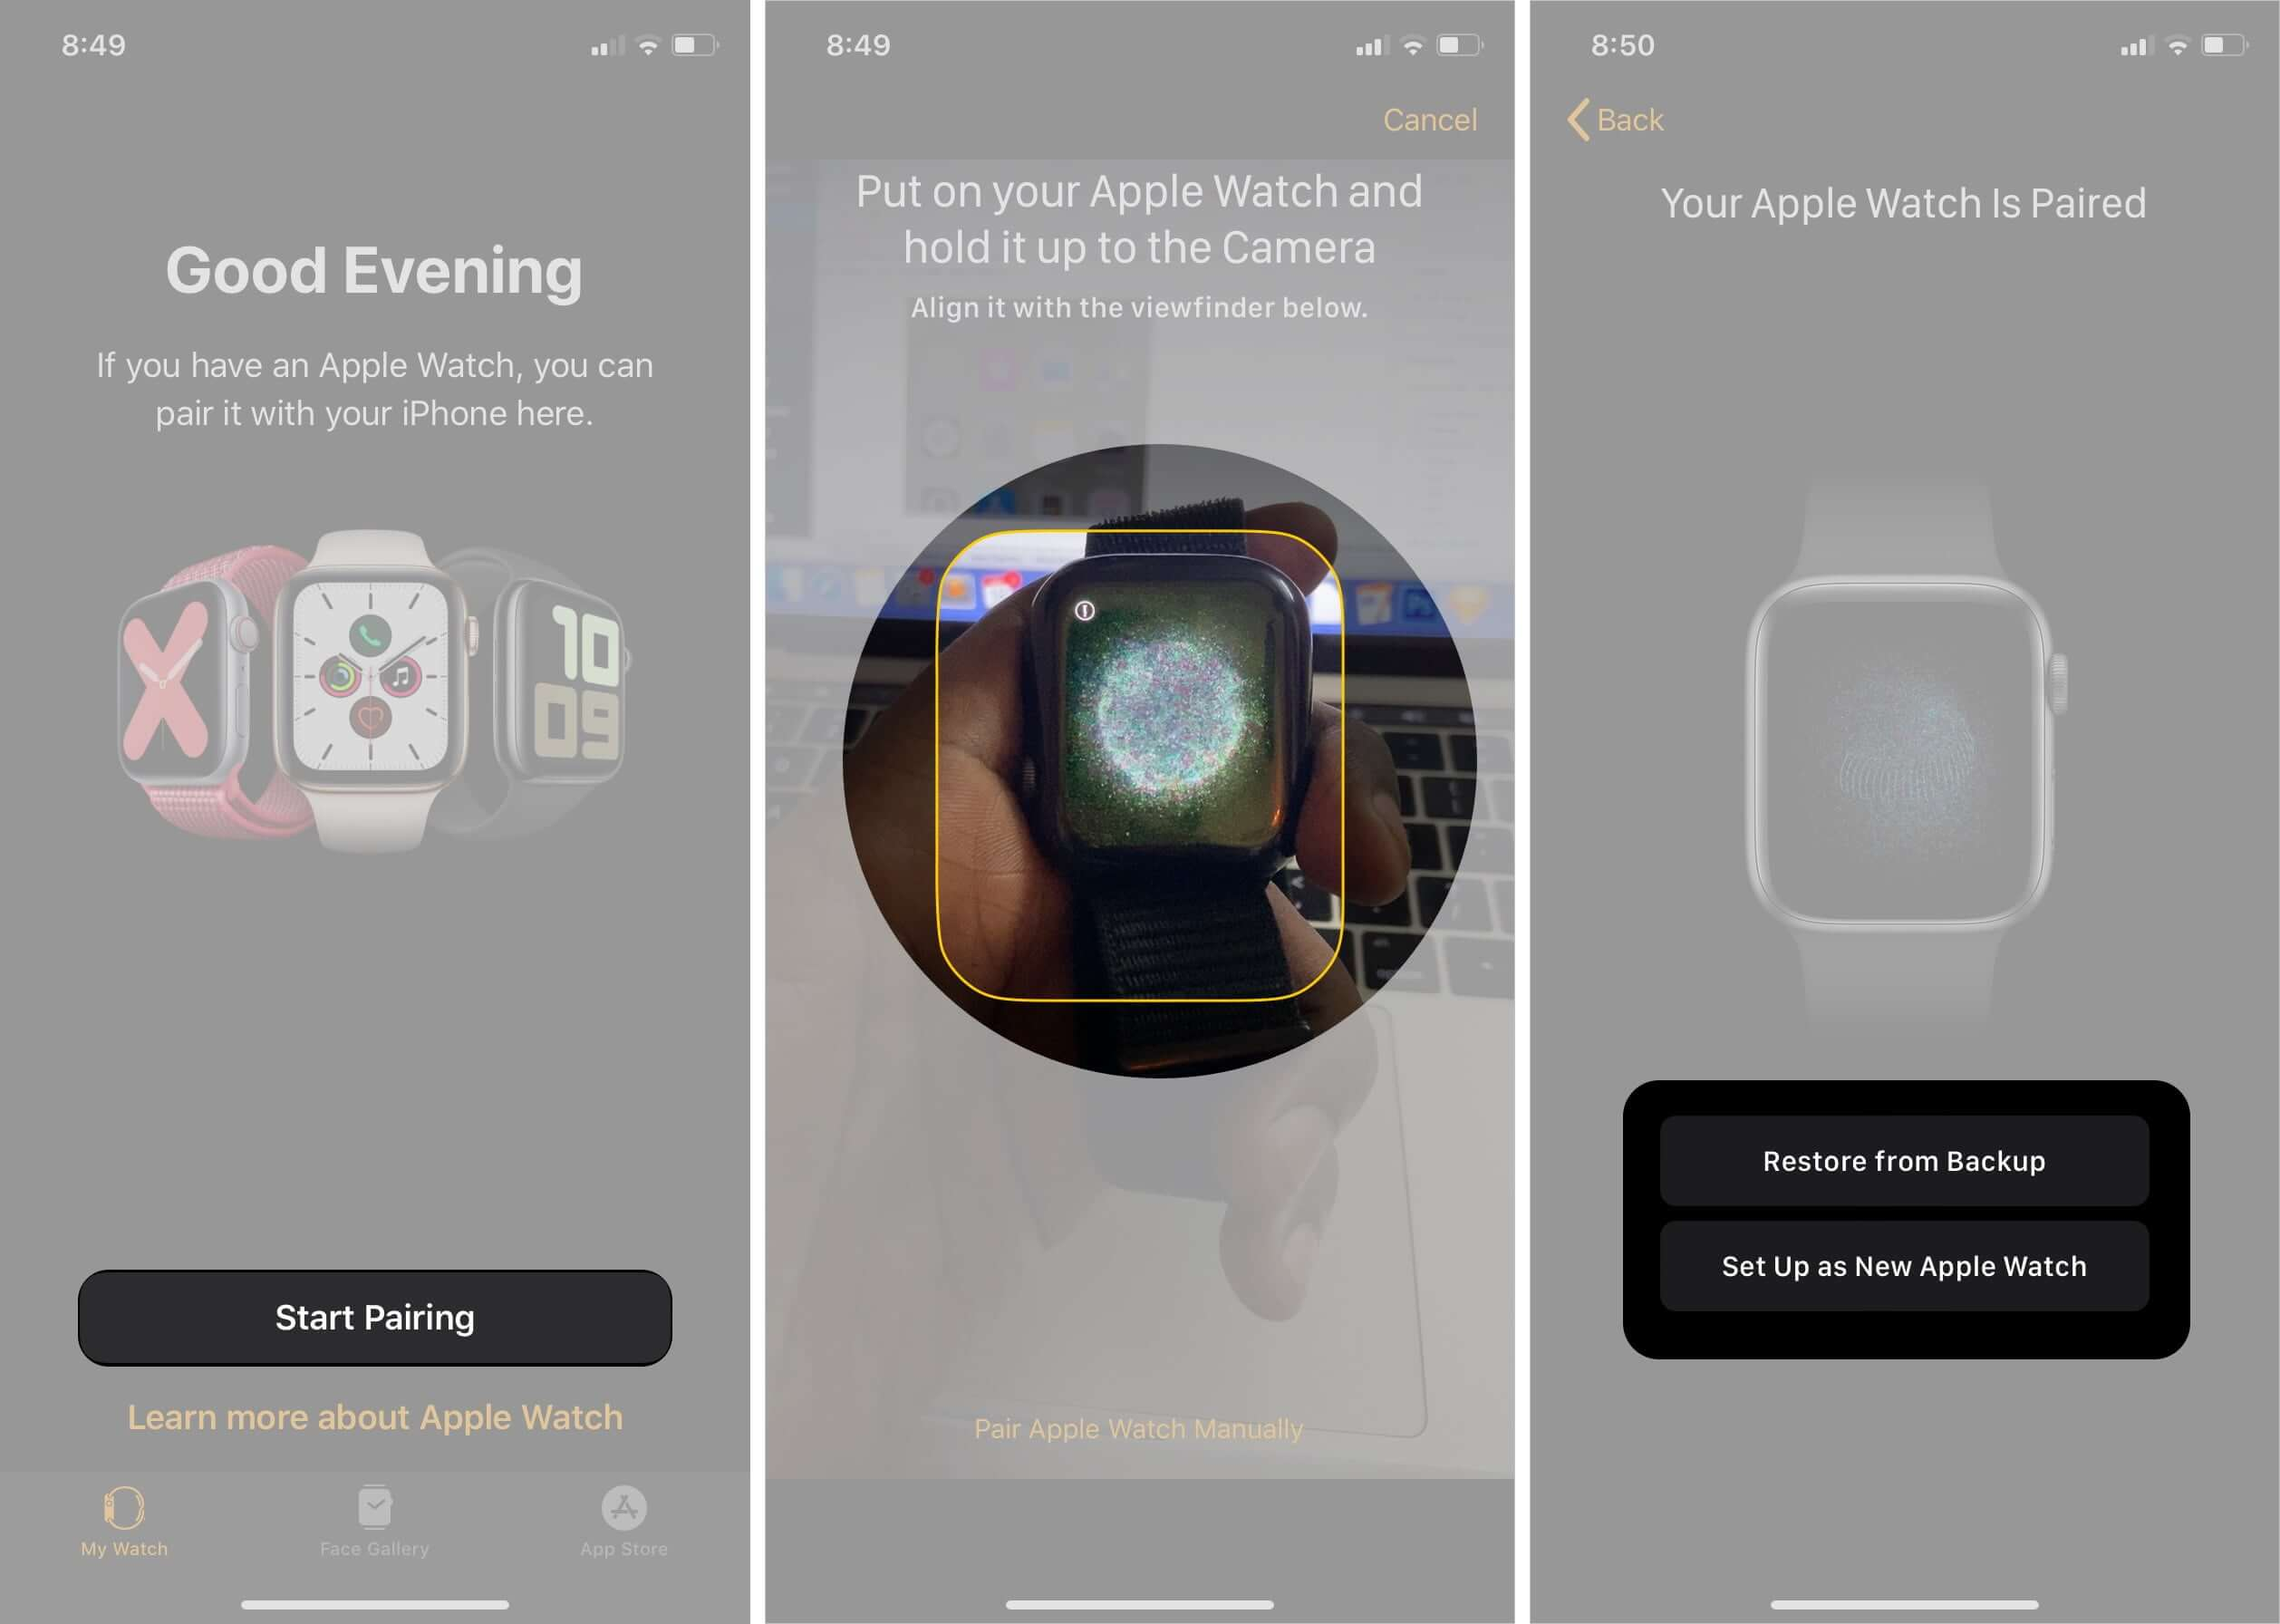 Tap on Start Pairing, put Apple Watch and hold it up to the Camera